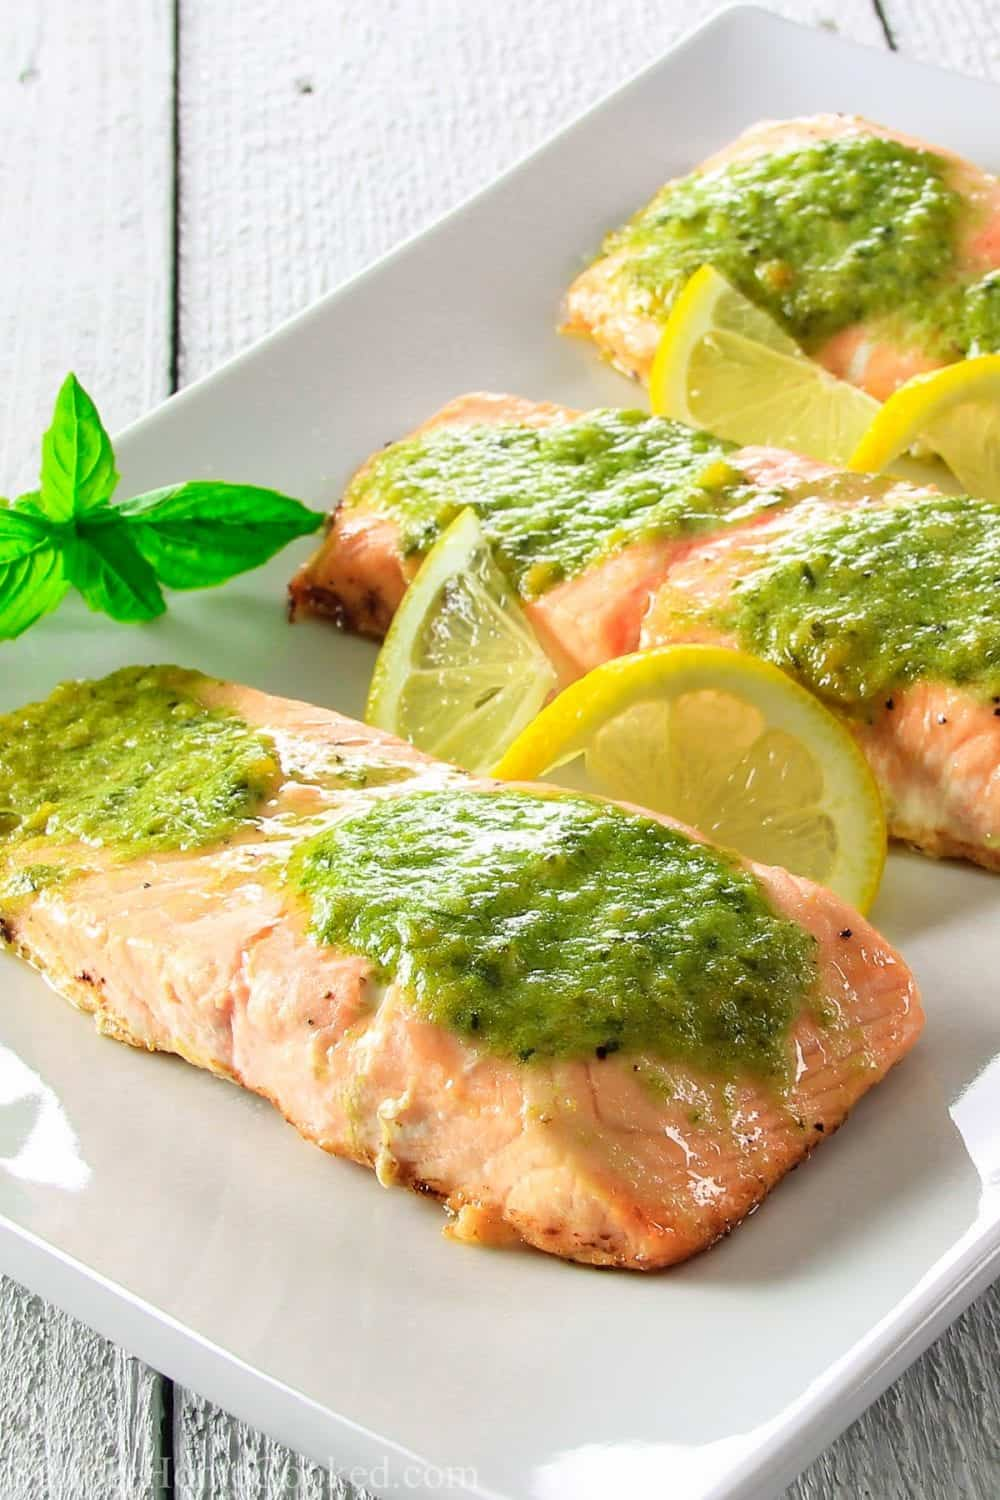 Baked salmon fillets with pesto butter on top, and a sliced lemons and basil on the side